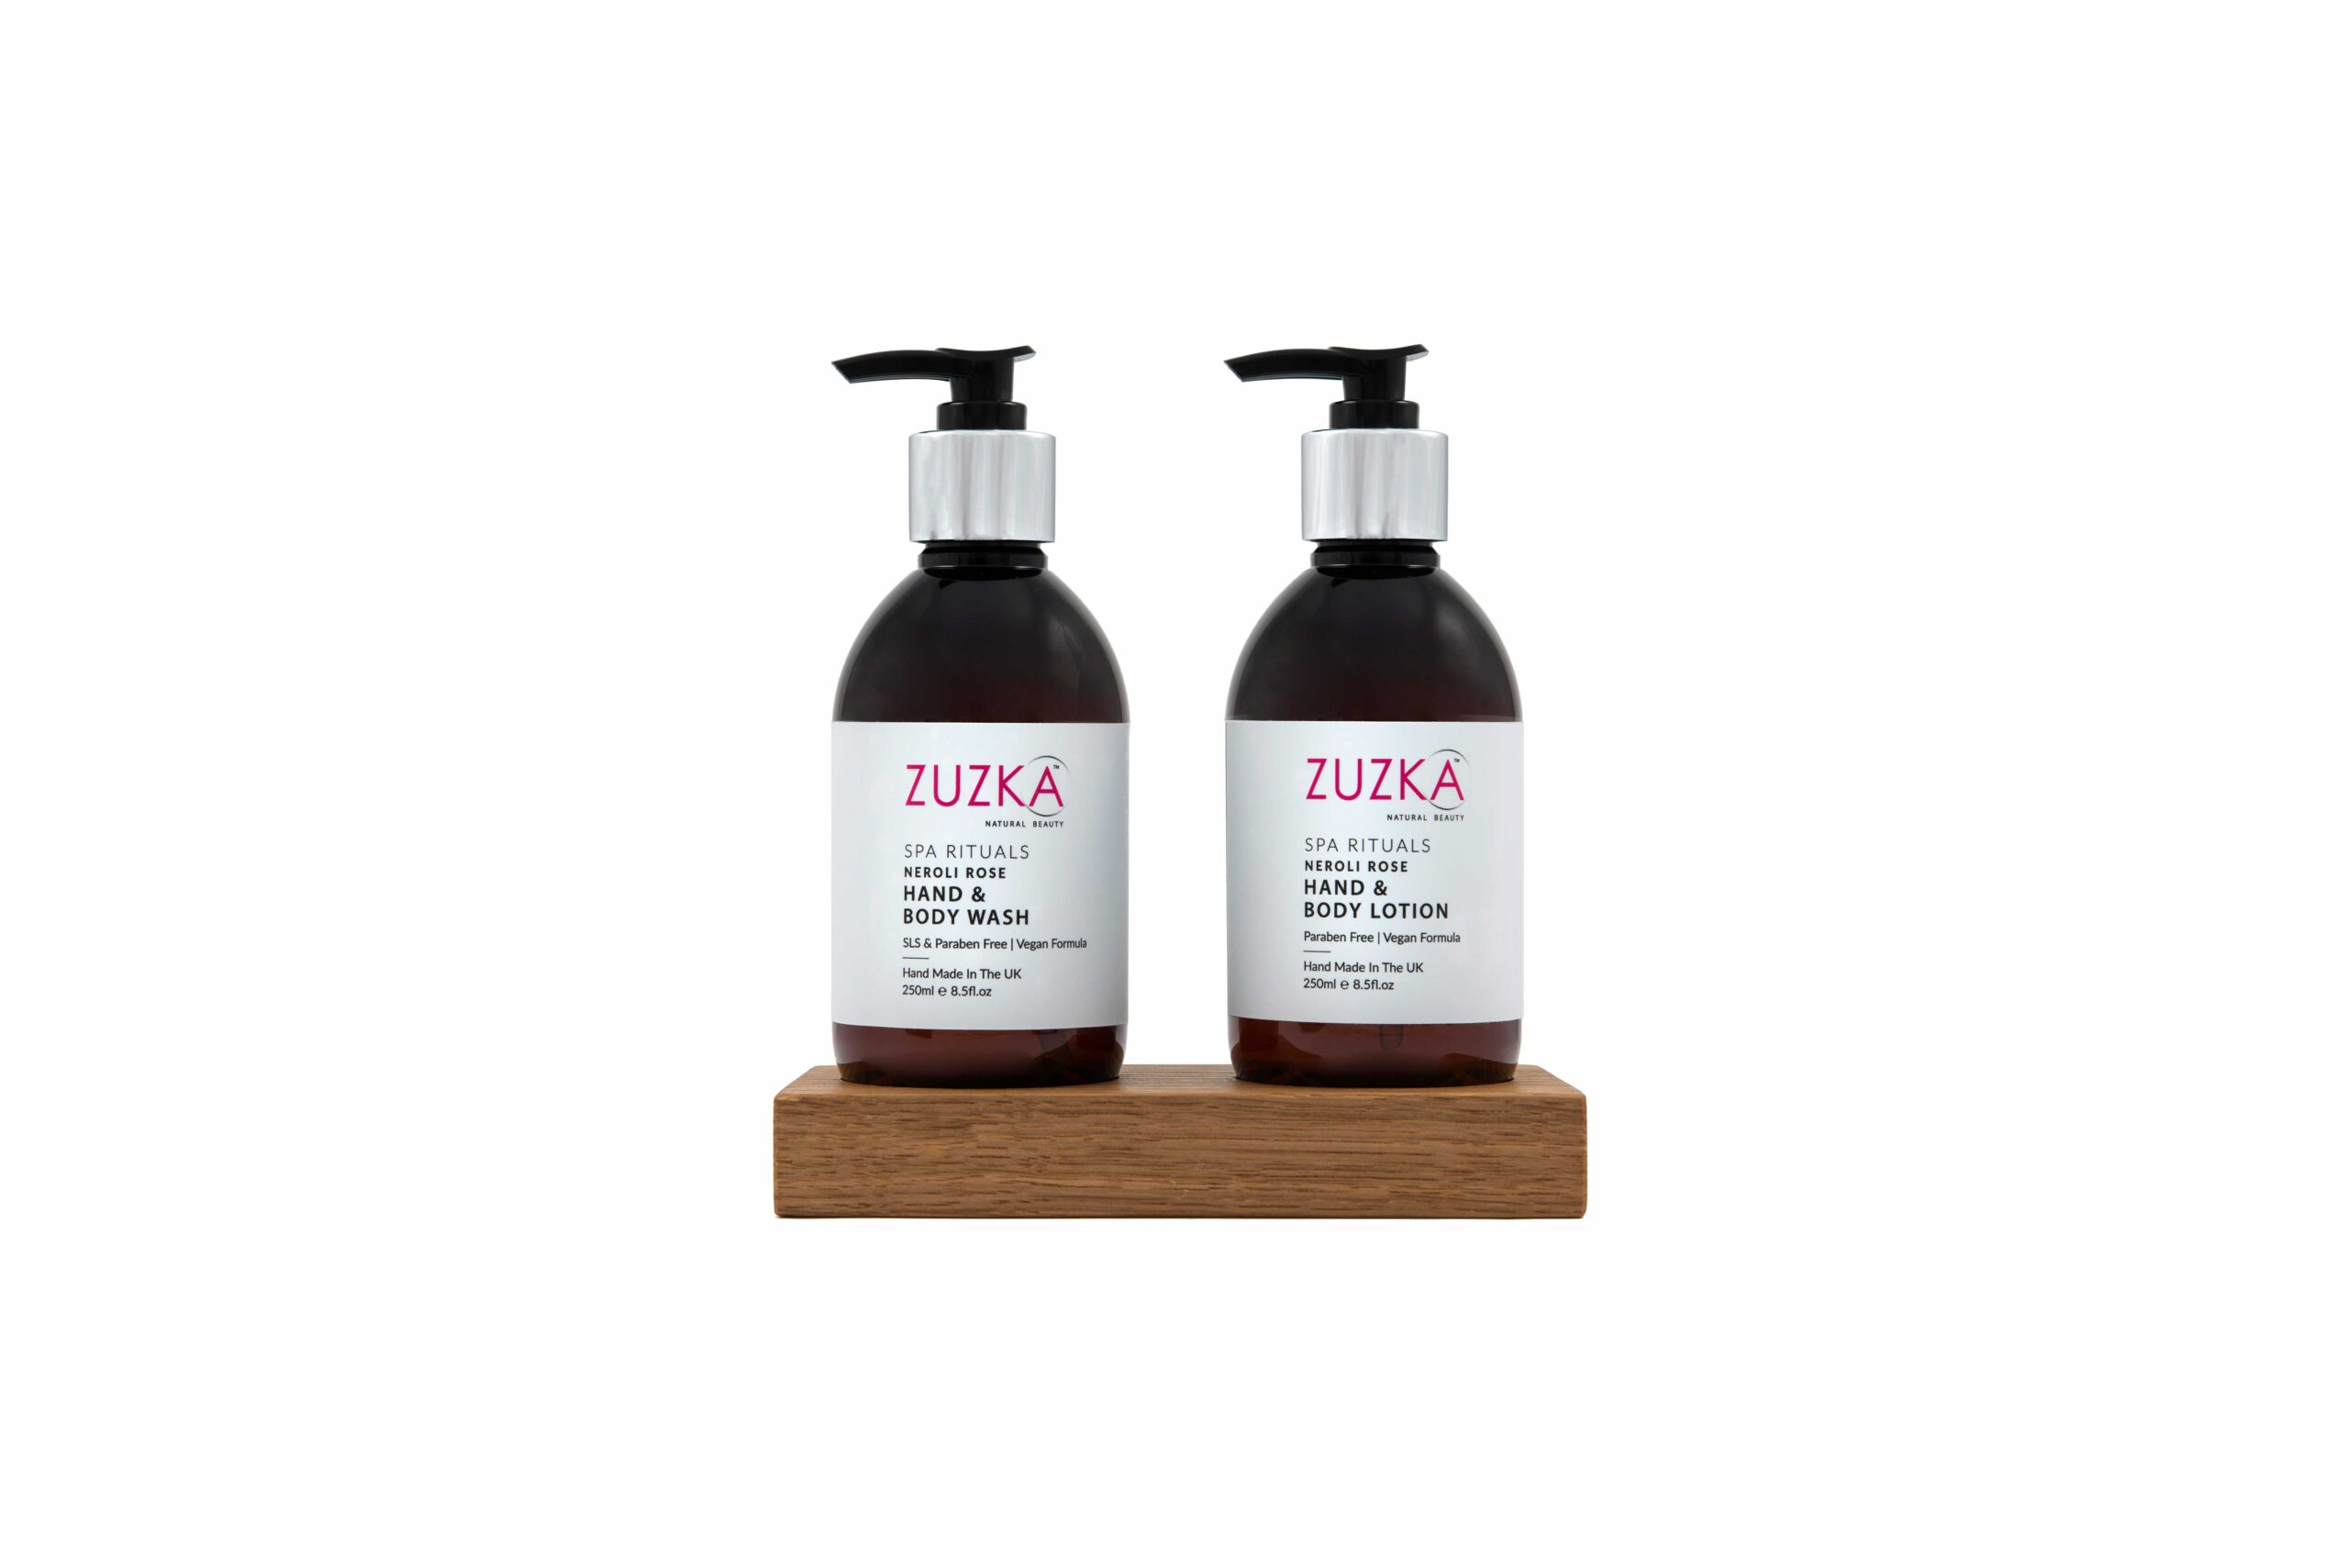 Zuzka Spa Rituals Hand Crafted Hand-Body-Wash and Lotion-Stand